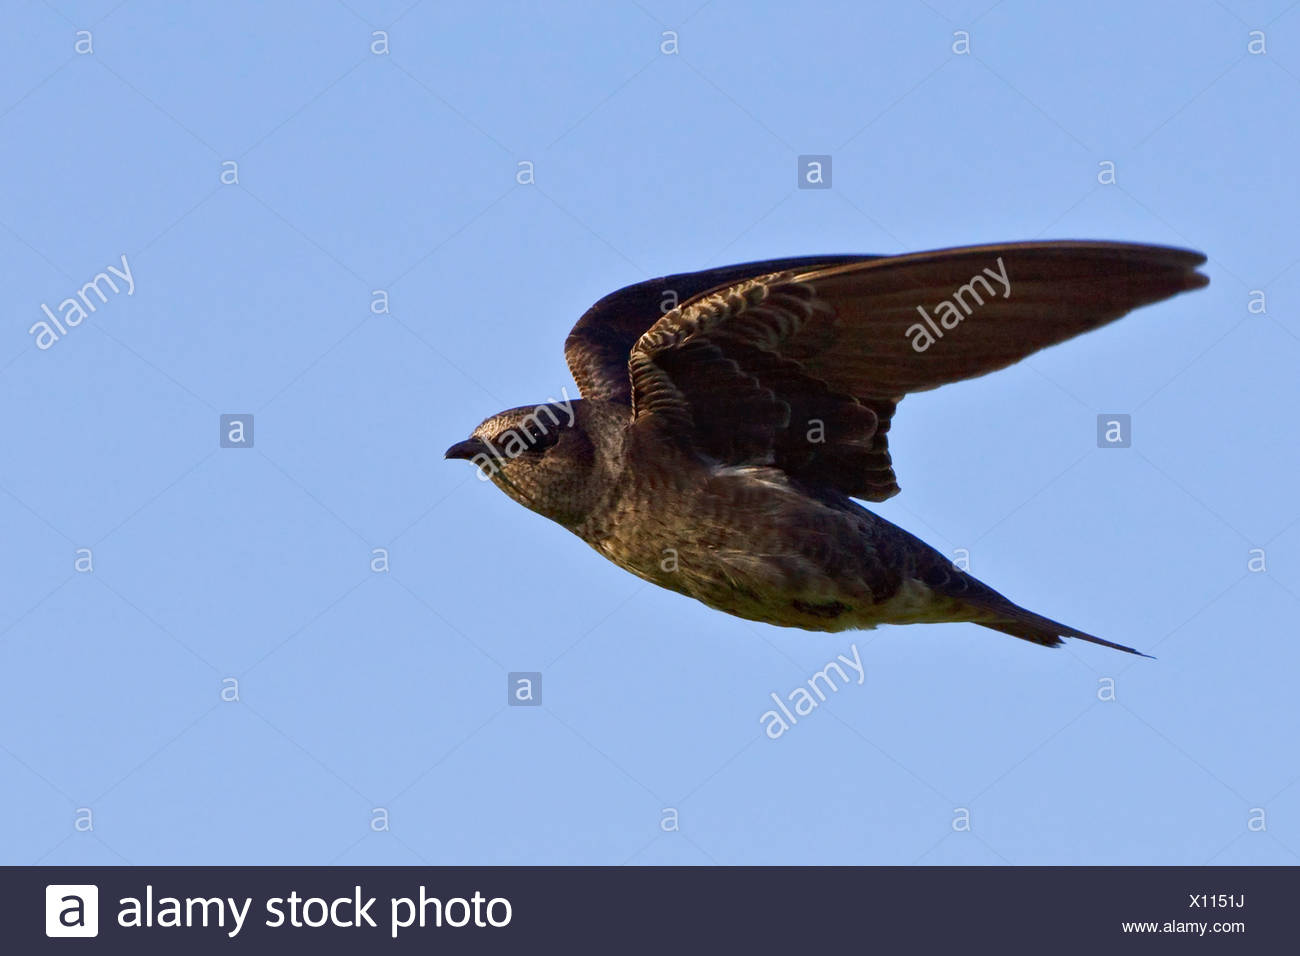 Purple Martin (Progne subis) flying and hunting for insects near Long Point, Ontario, Canada. - Stock Image